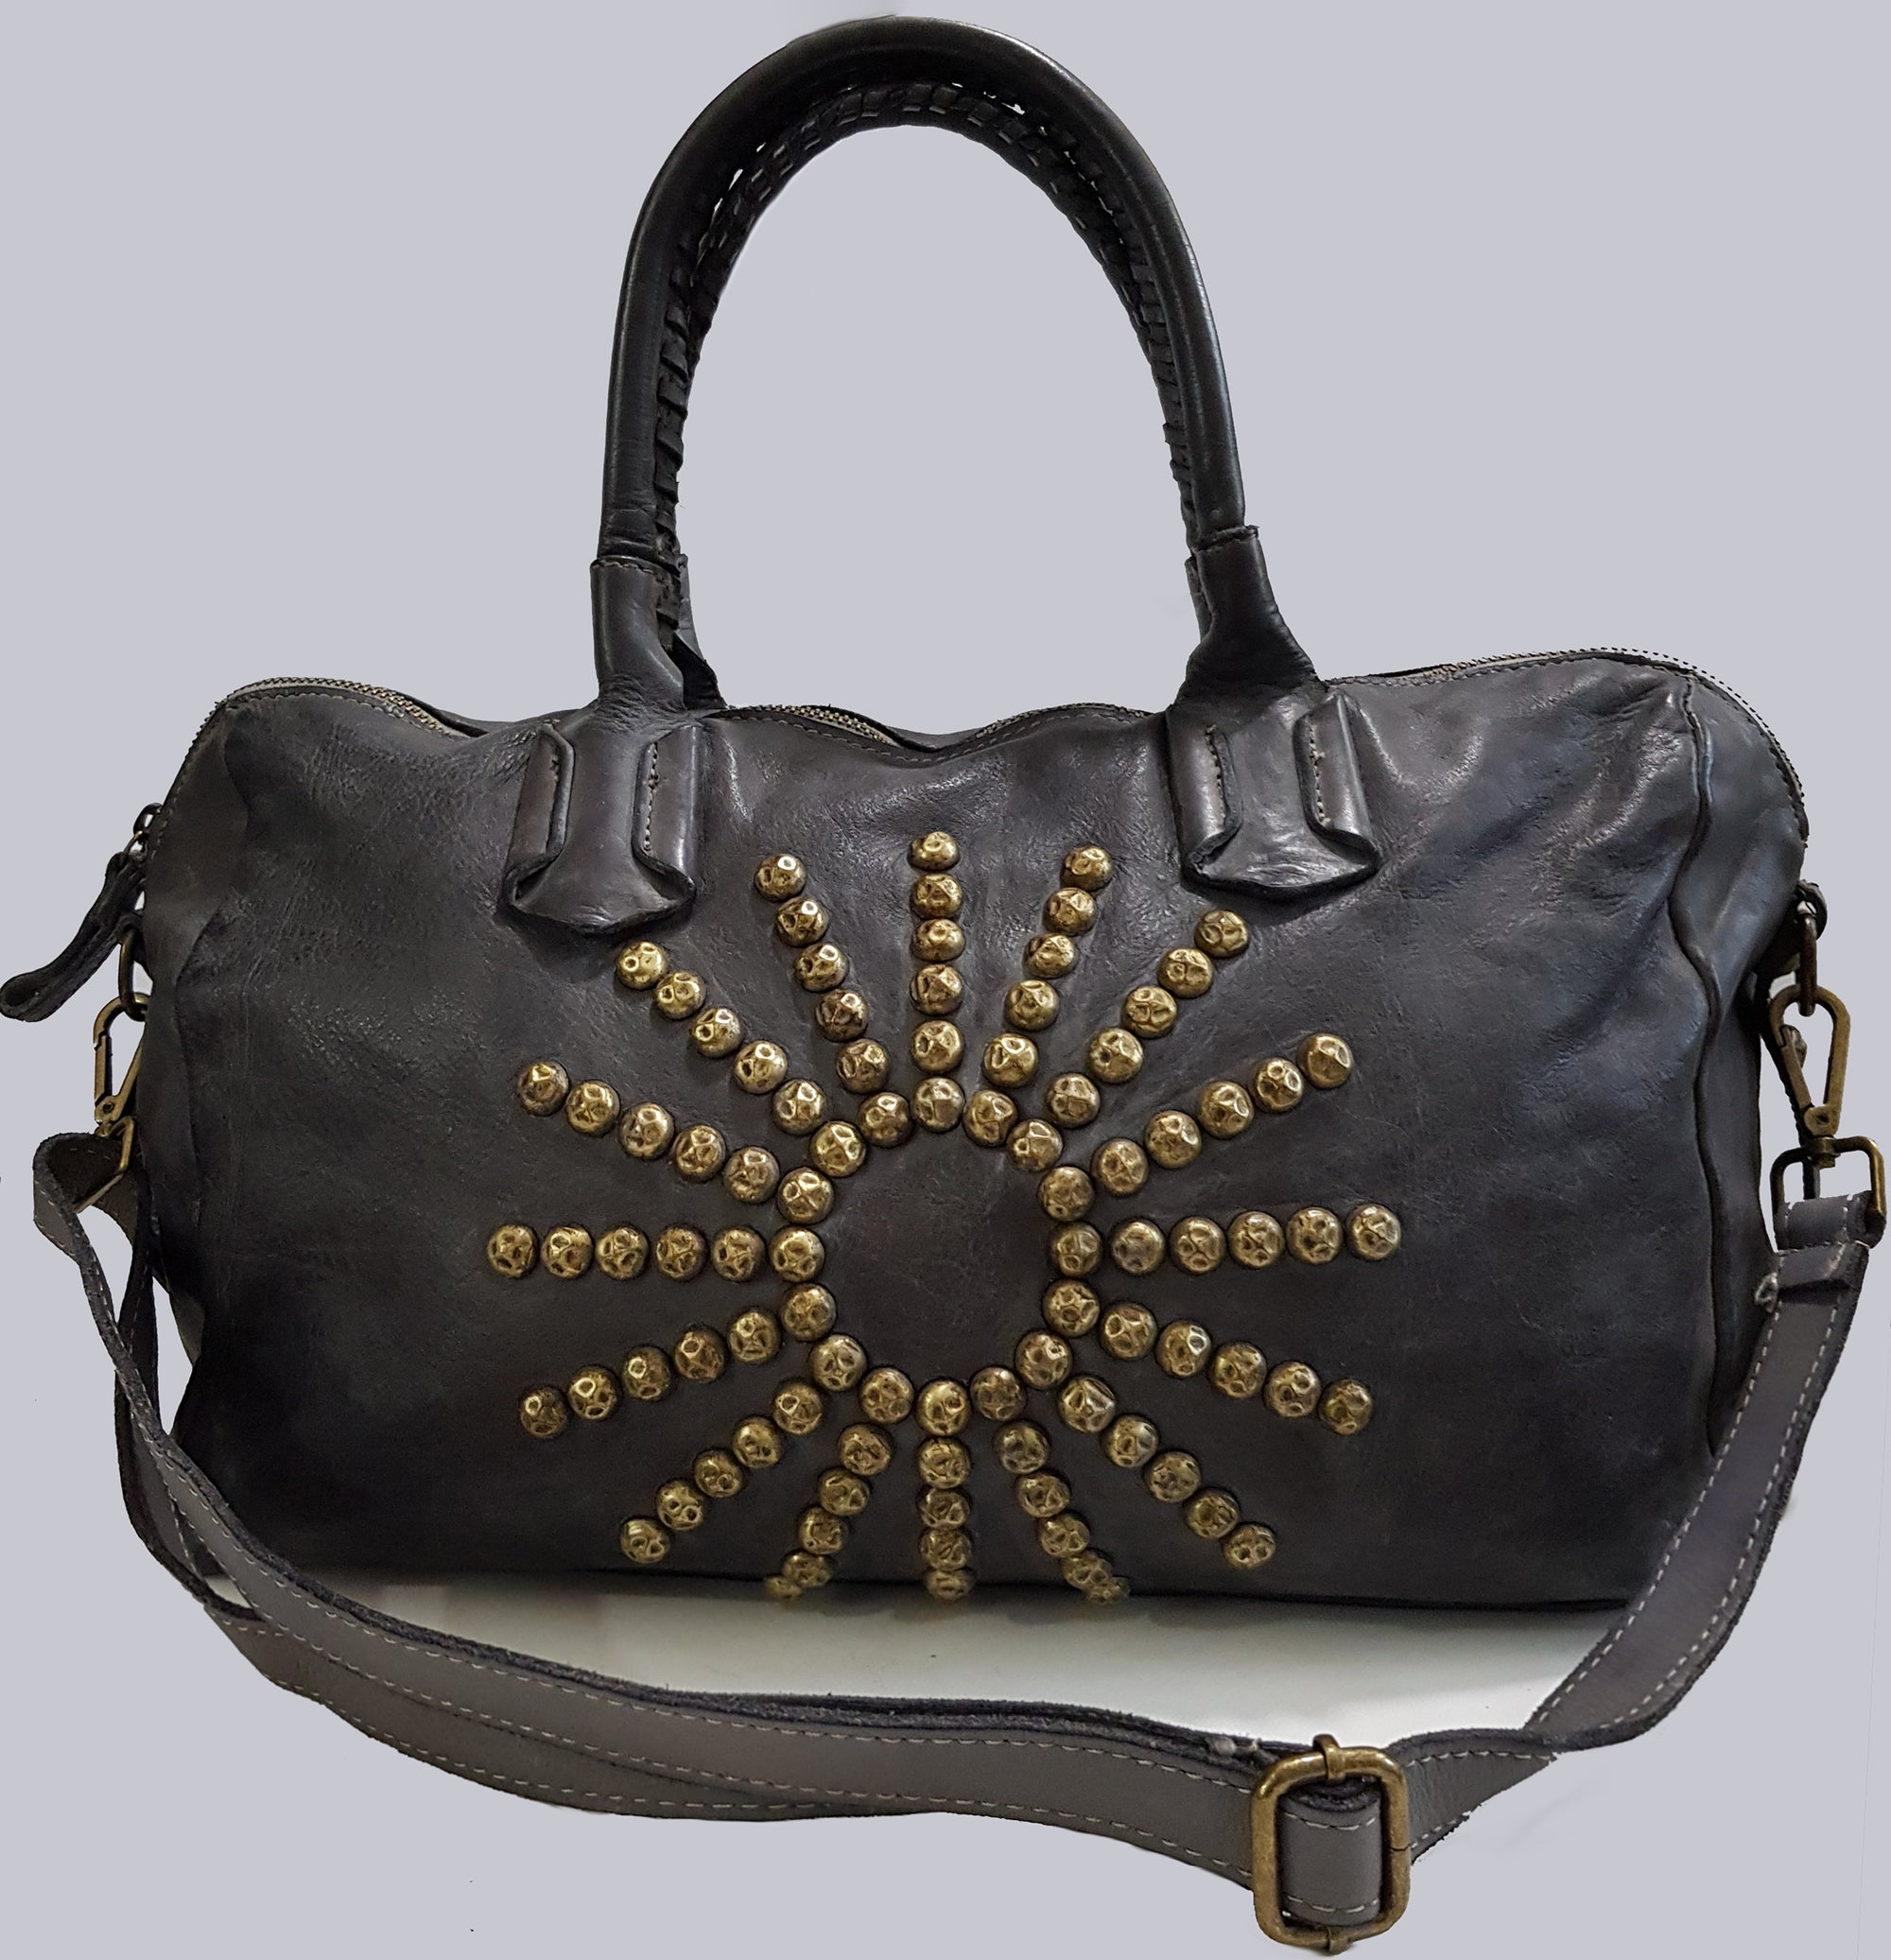 Charcoal Studded Washed Leather Handbag / Shoulder Bag